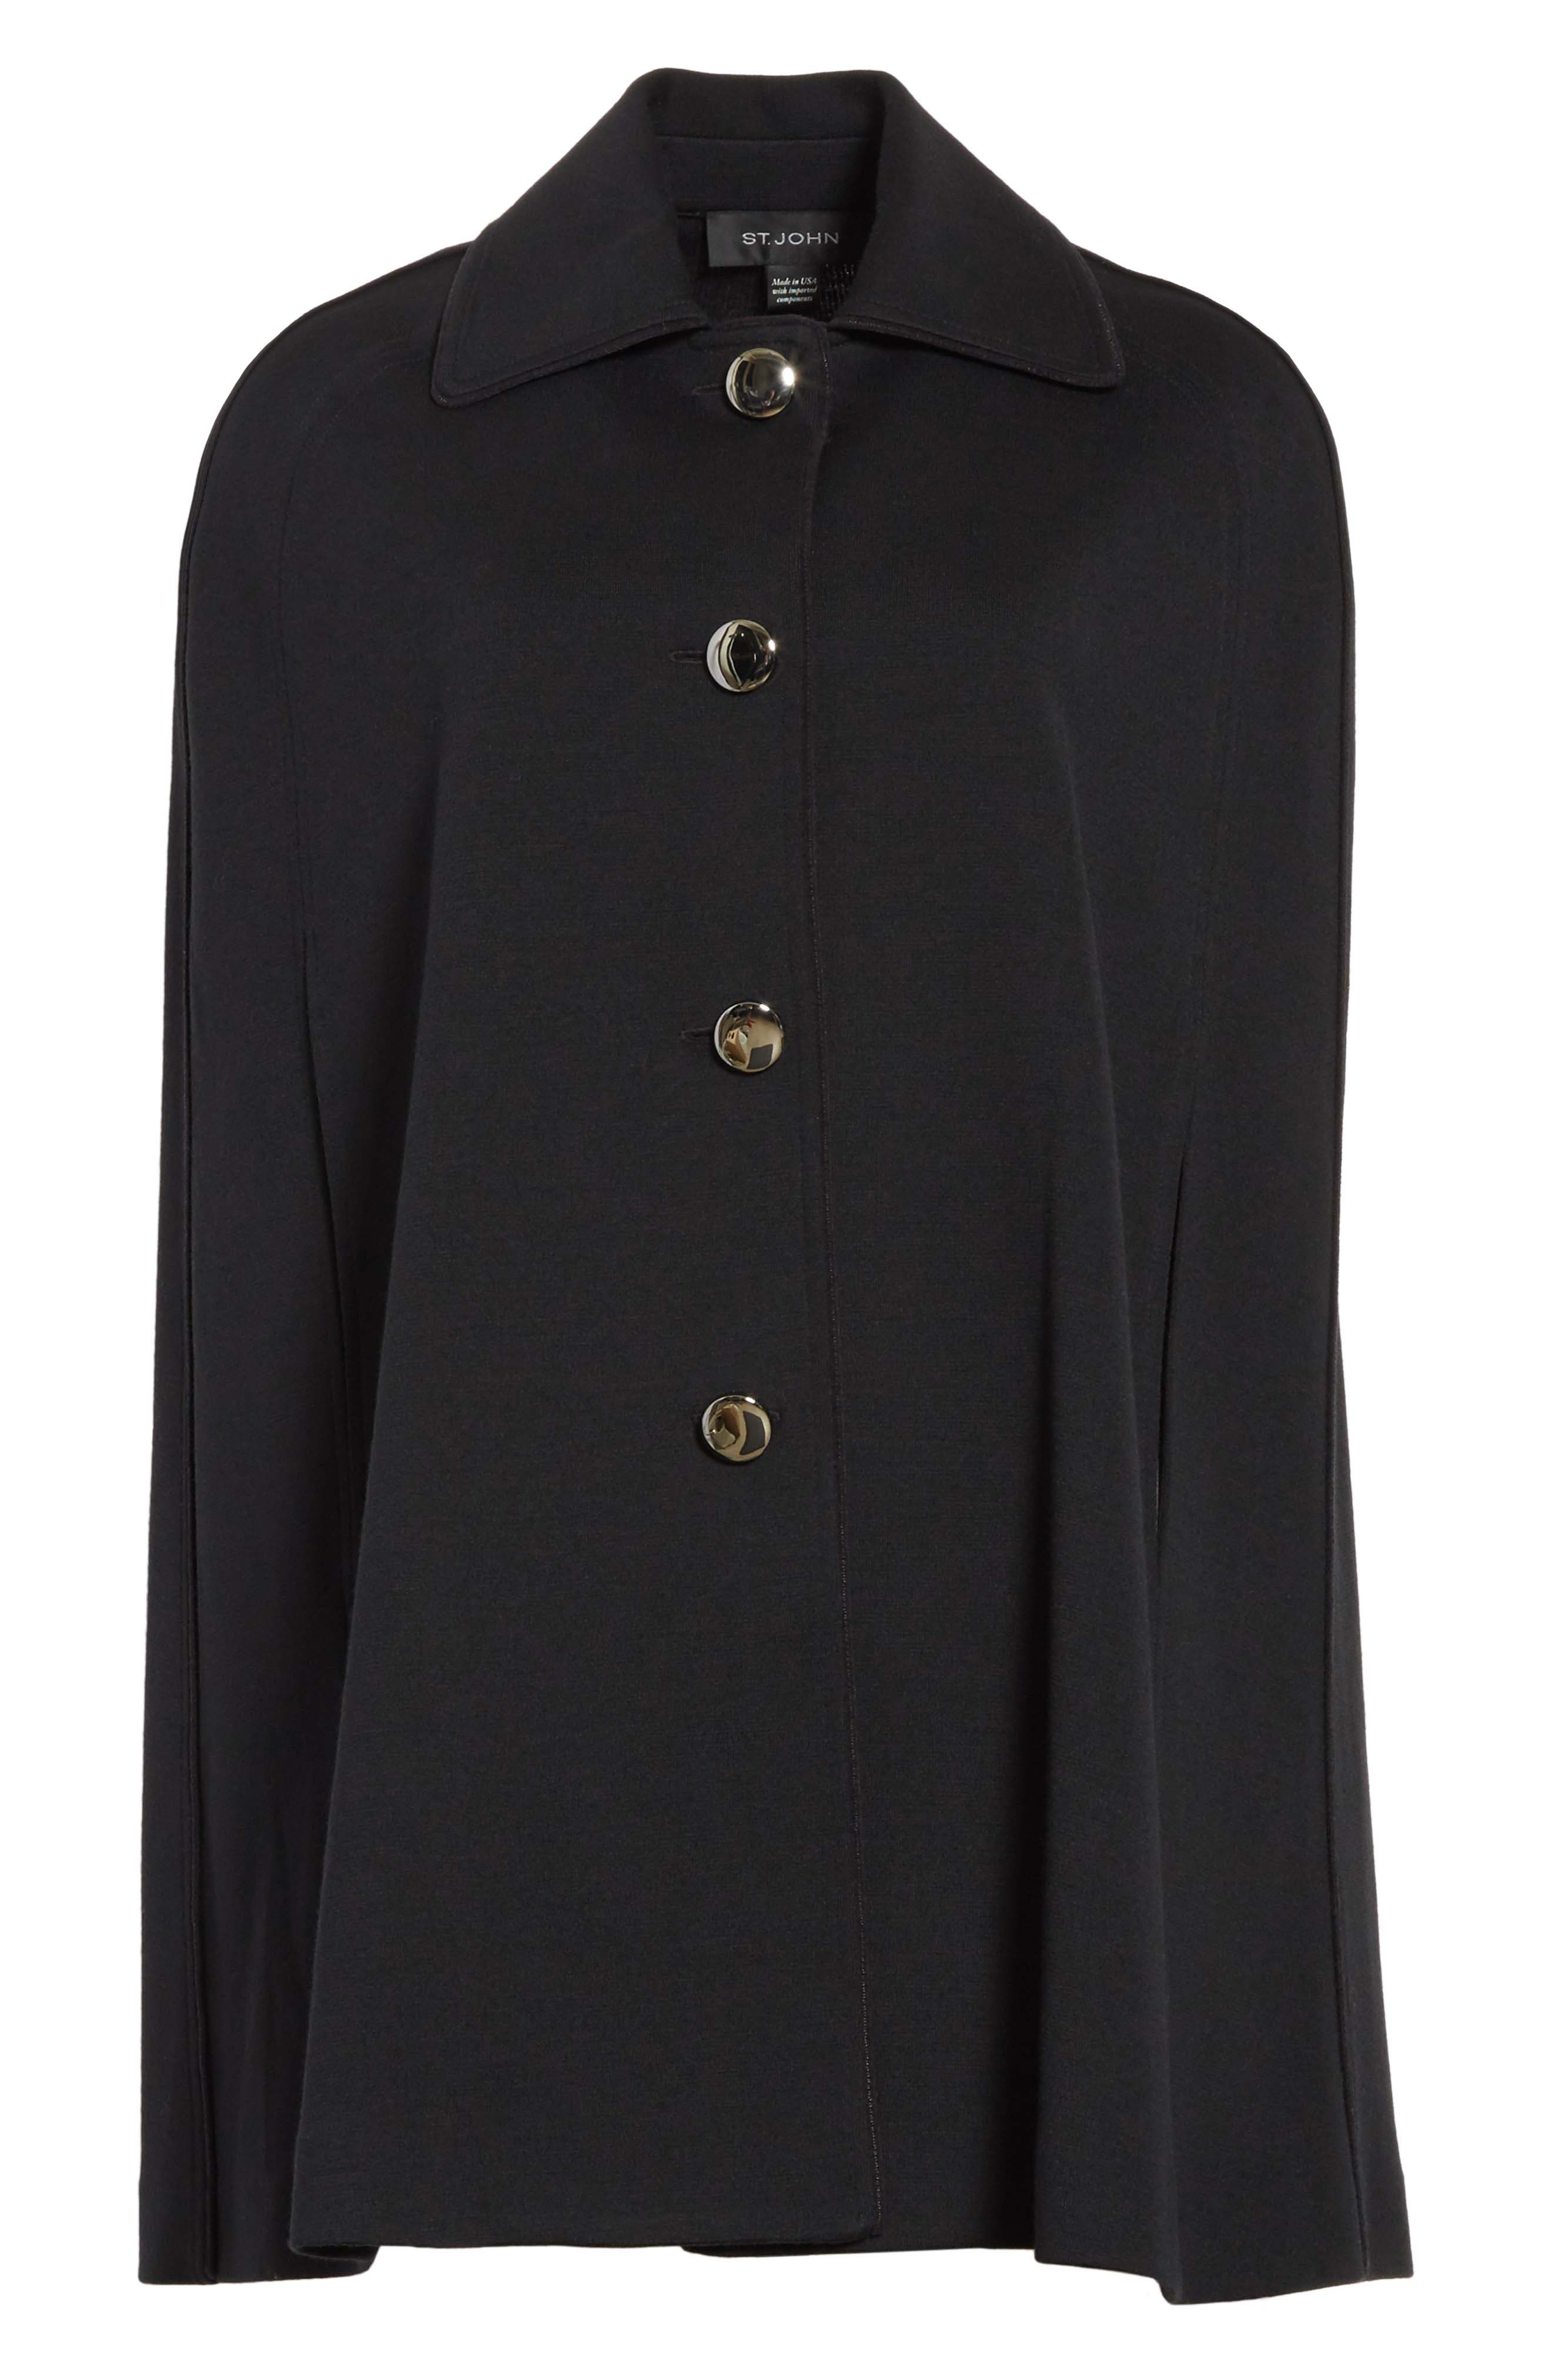 ST. JOHN COLLECTION,                             Milano Knit Collared Cape,                             Alternate thumbnail 5, color,                             001